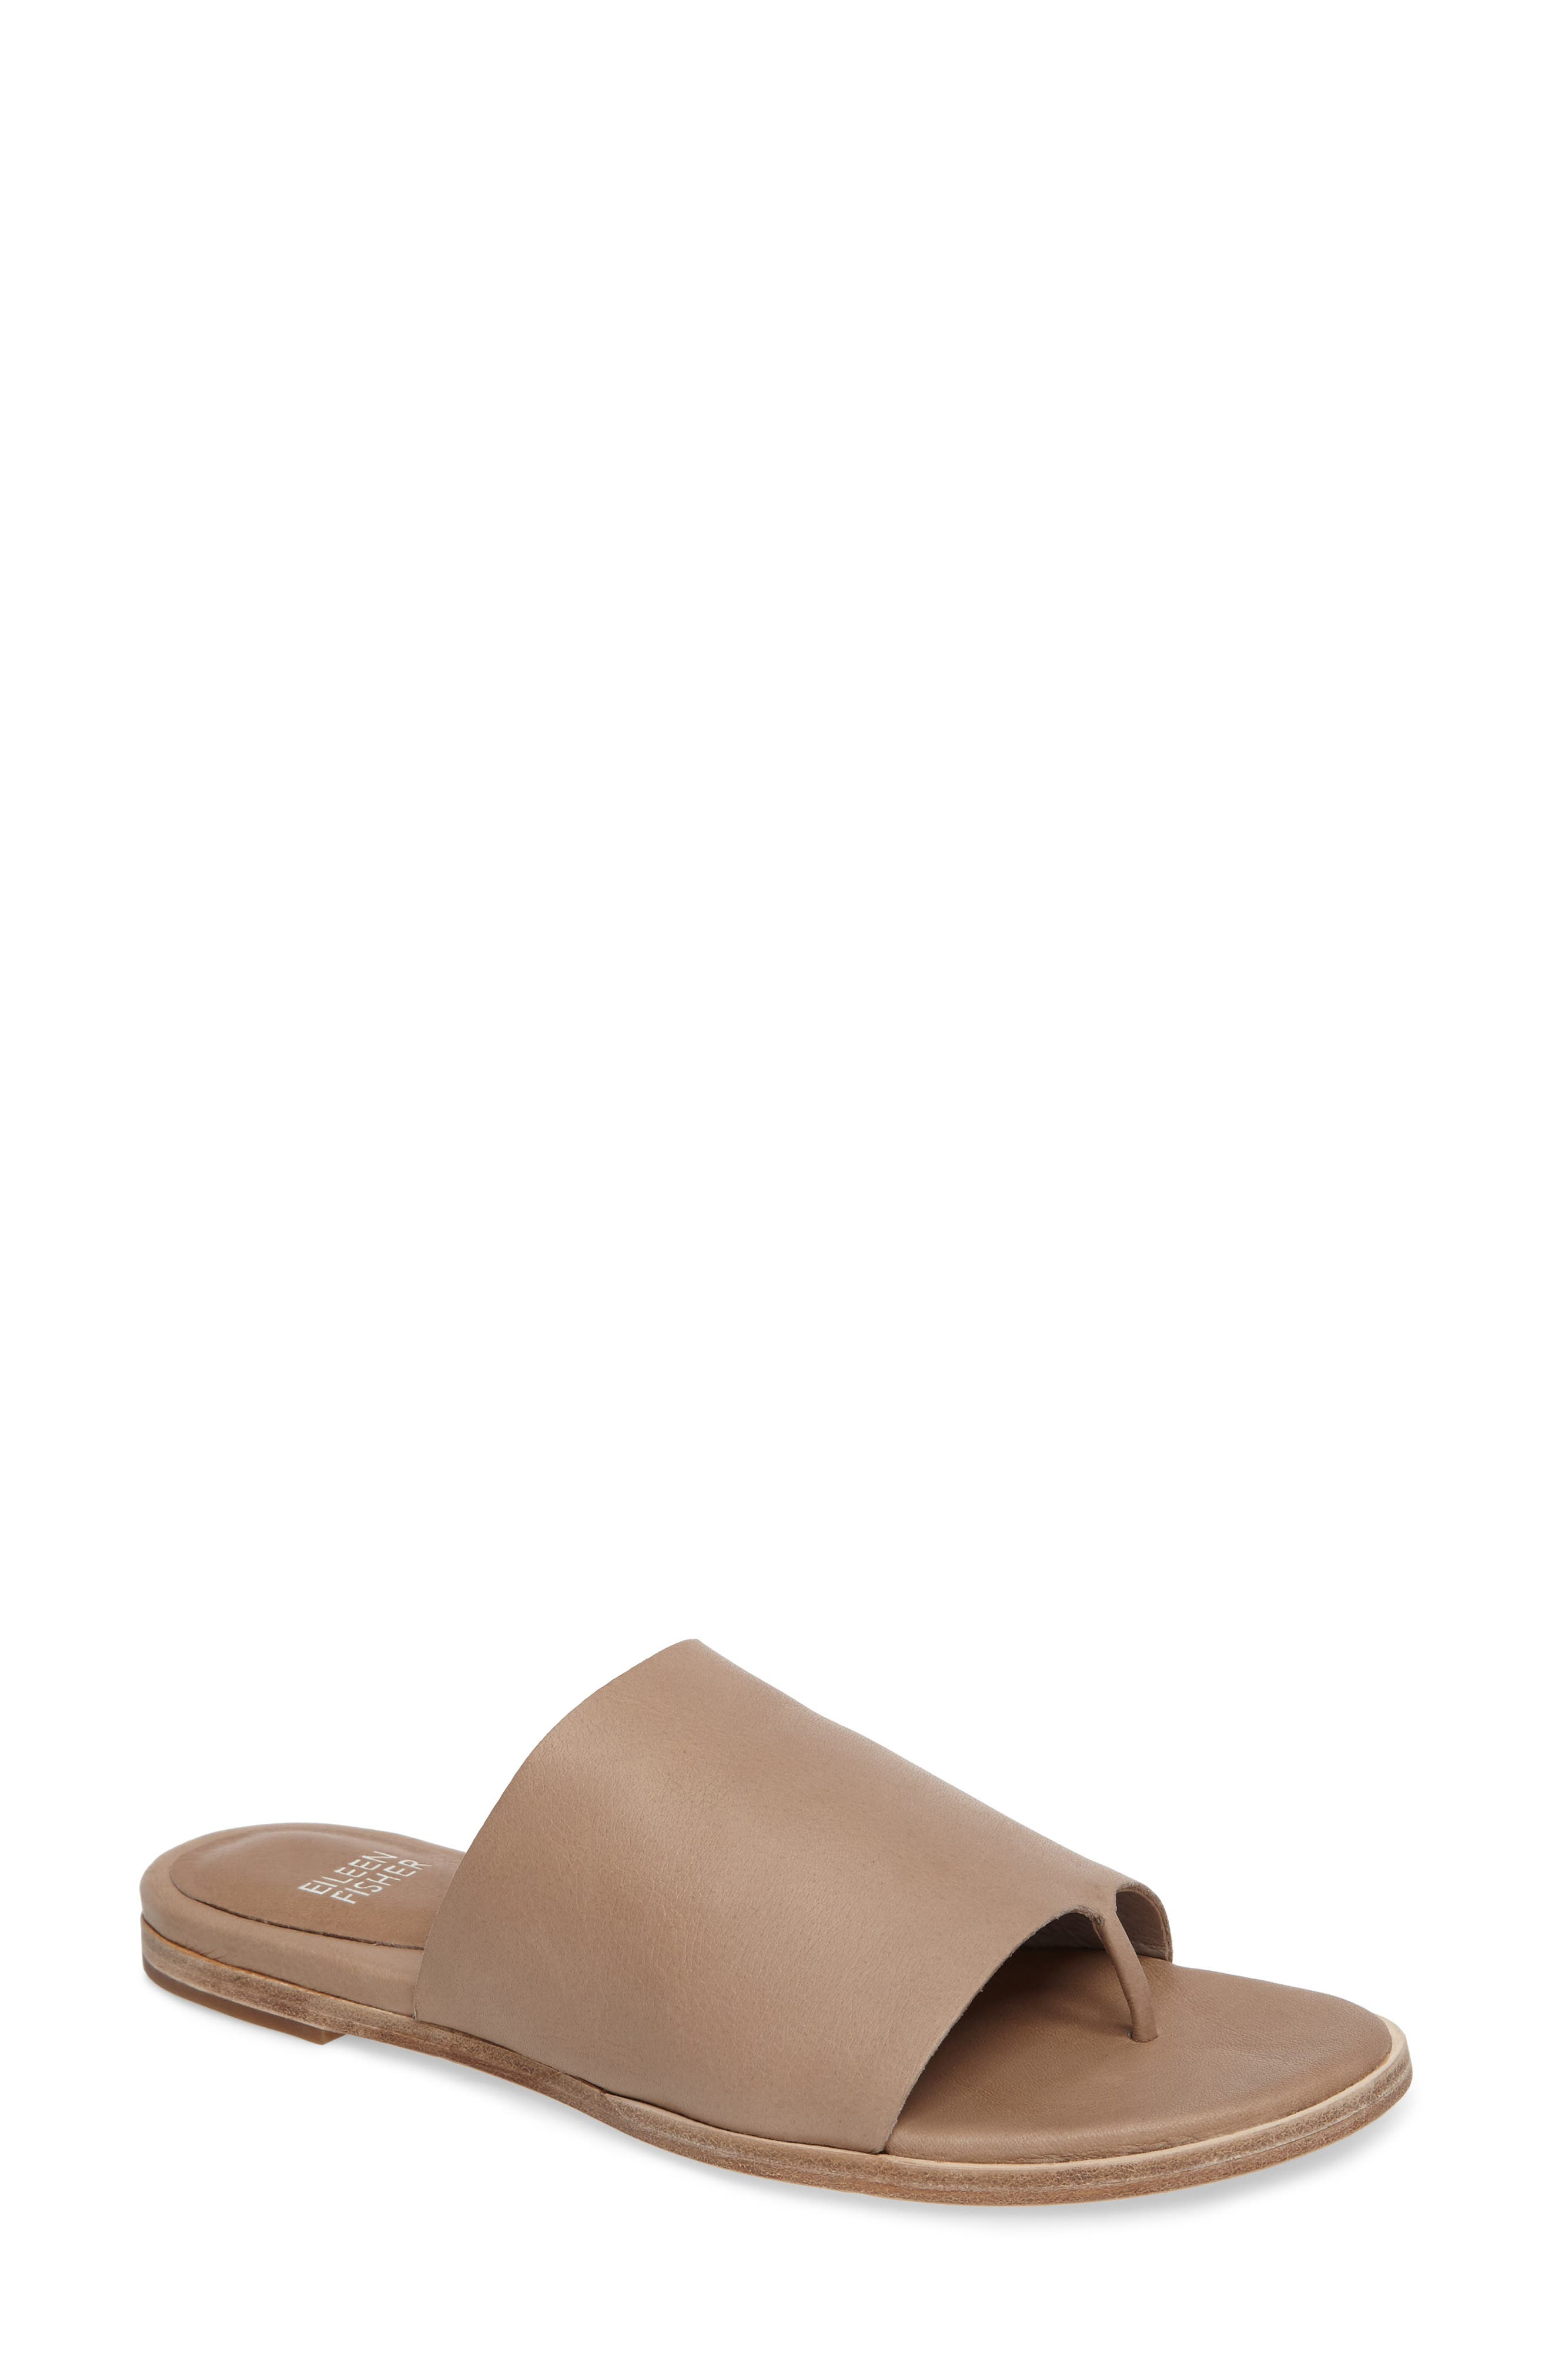 Main Image - Eileen Fisher 'Mere' Thong Sandal (Women)